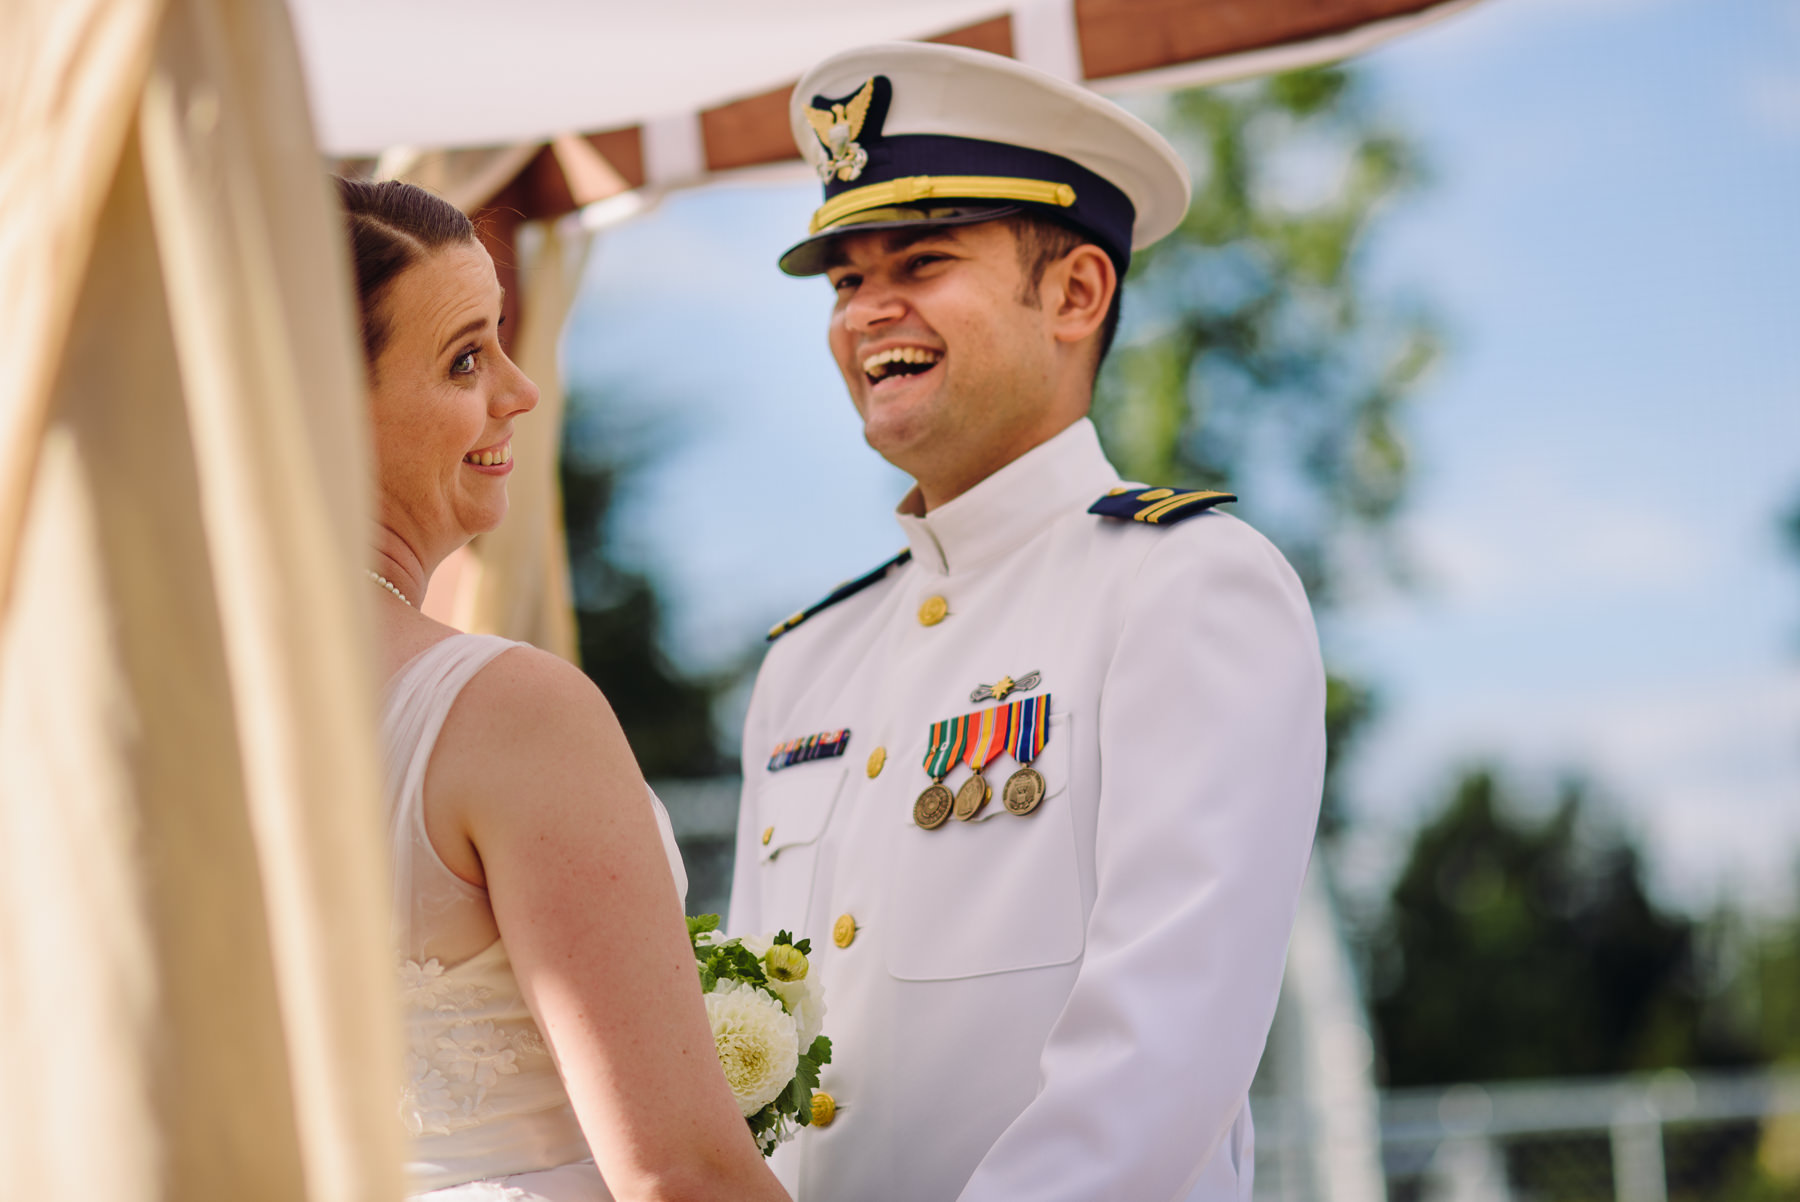 university-of-puget-sound-baseball-feild-wedding-photos-31